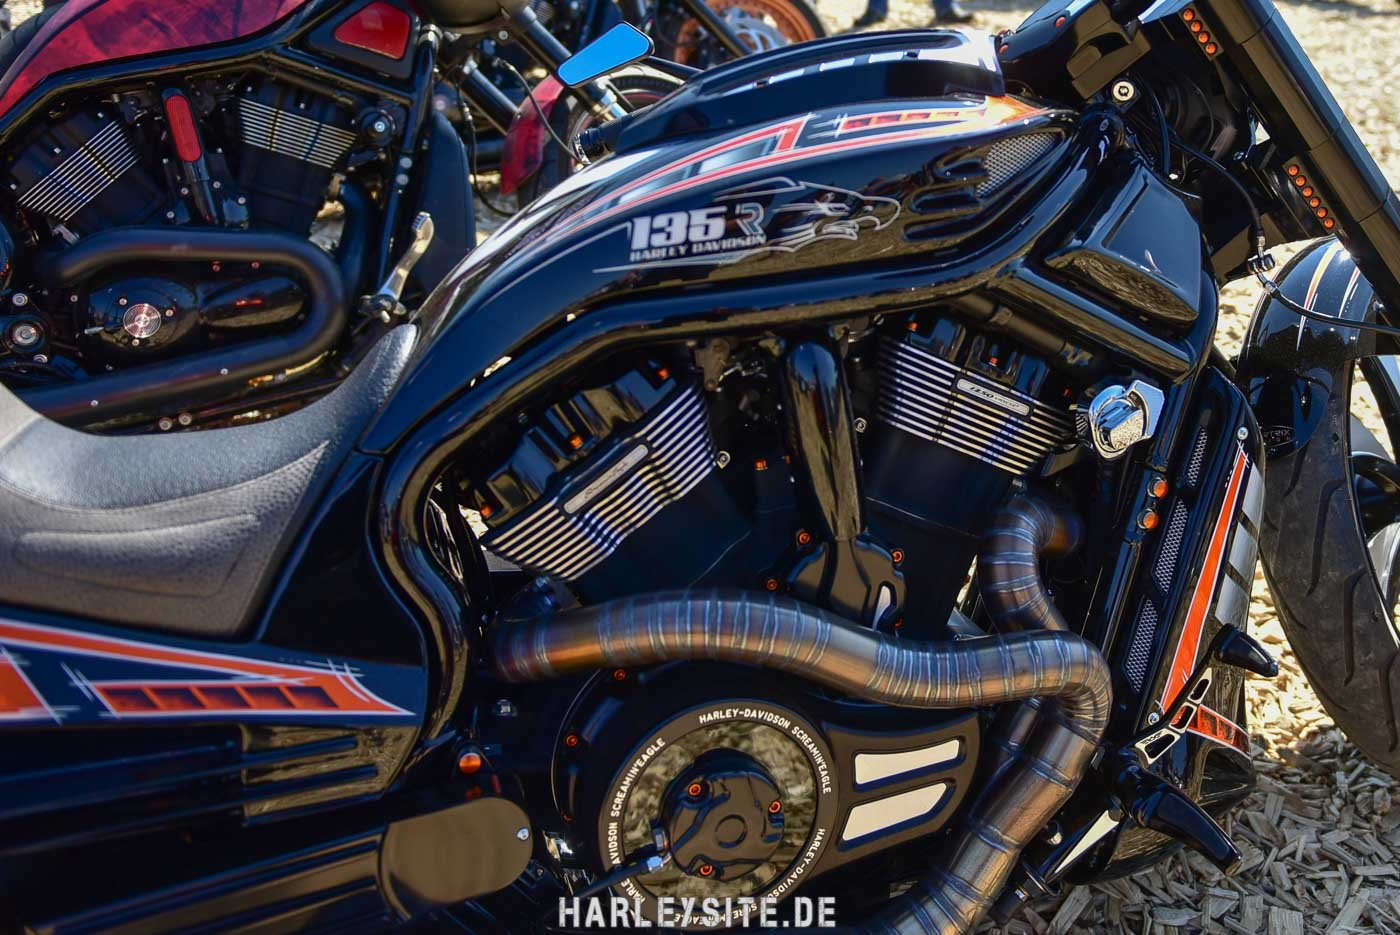 European-Bike-Week-67